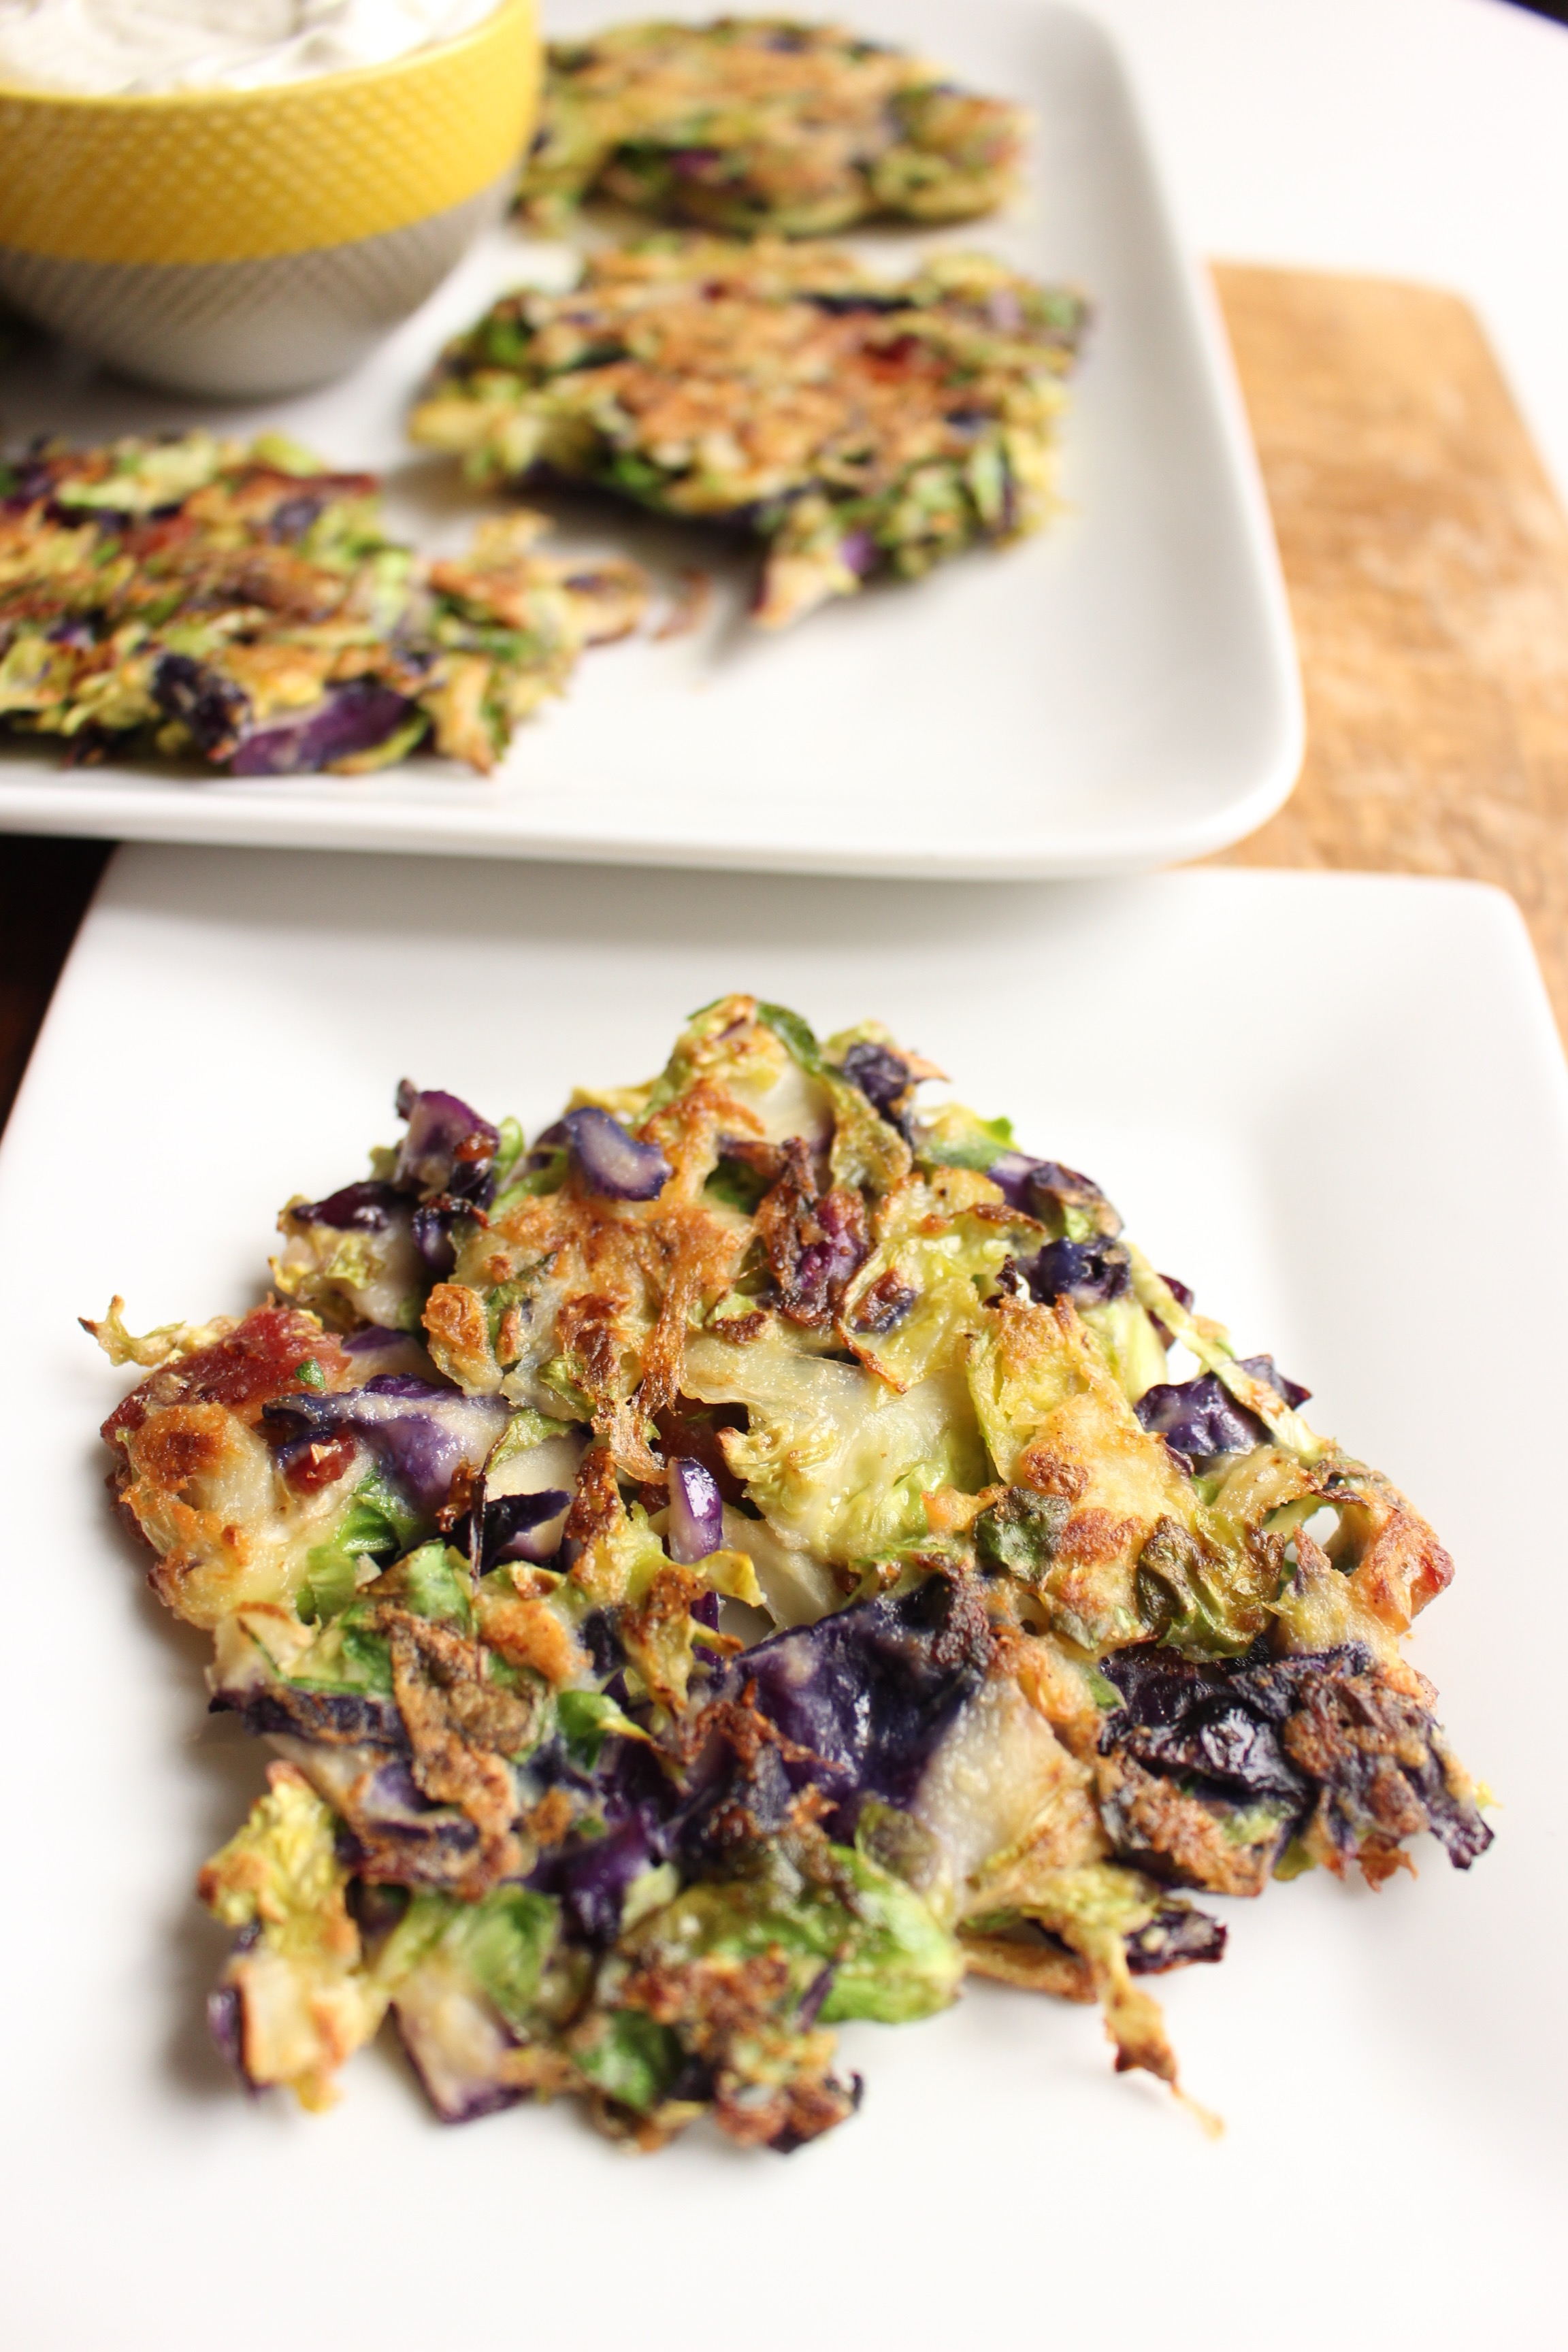 Brussels sprouts fritters | Me & The Moose. Get your kids to eat Brussels sprouts by frying them with bacon and cheese in these crispy, crunchy, savory, and gluten-free Brussels spouts fritters. #meandthemoose #dinnerrecipes #sidedishes #glutenfree #glutenfreerecipes #brusselssprouts #brusselssptoutsfritters #fritters #vegetablerecipes